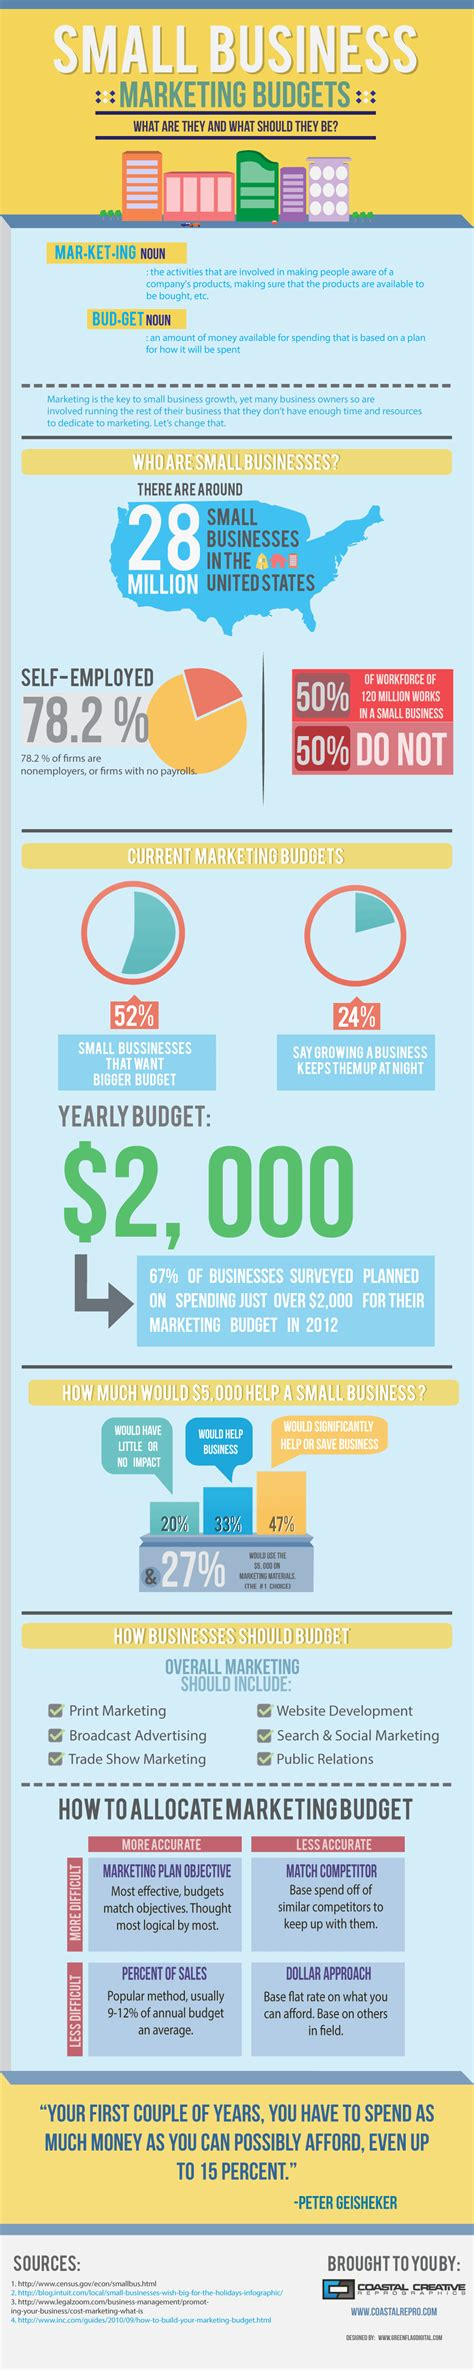 Business Marketing by Guide To Small Business Marketing Budgets Infographic